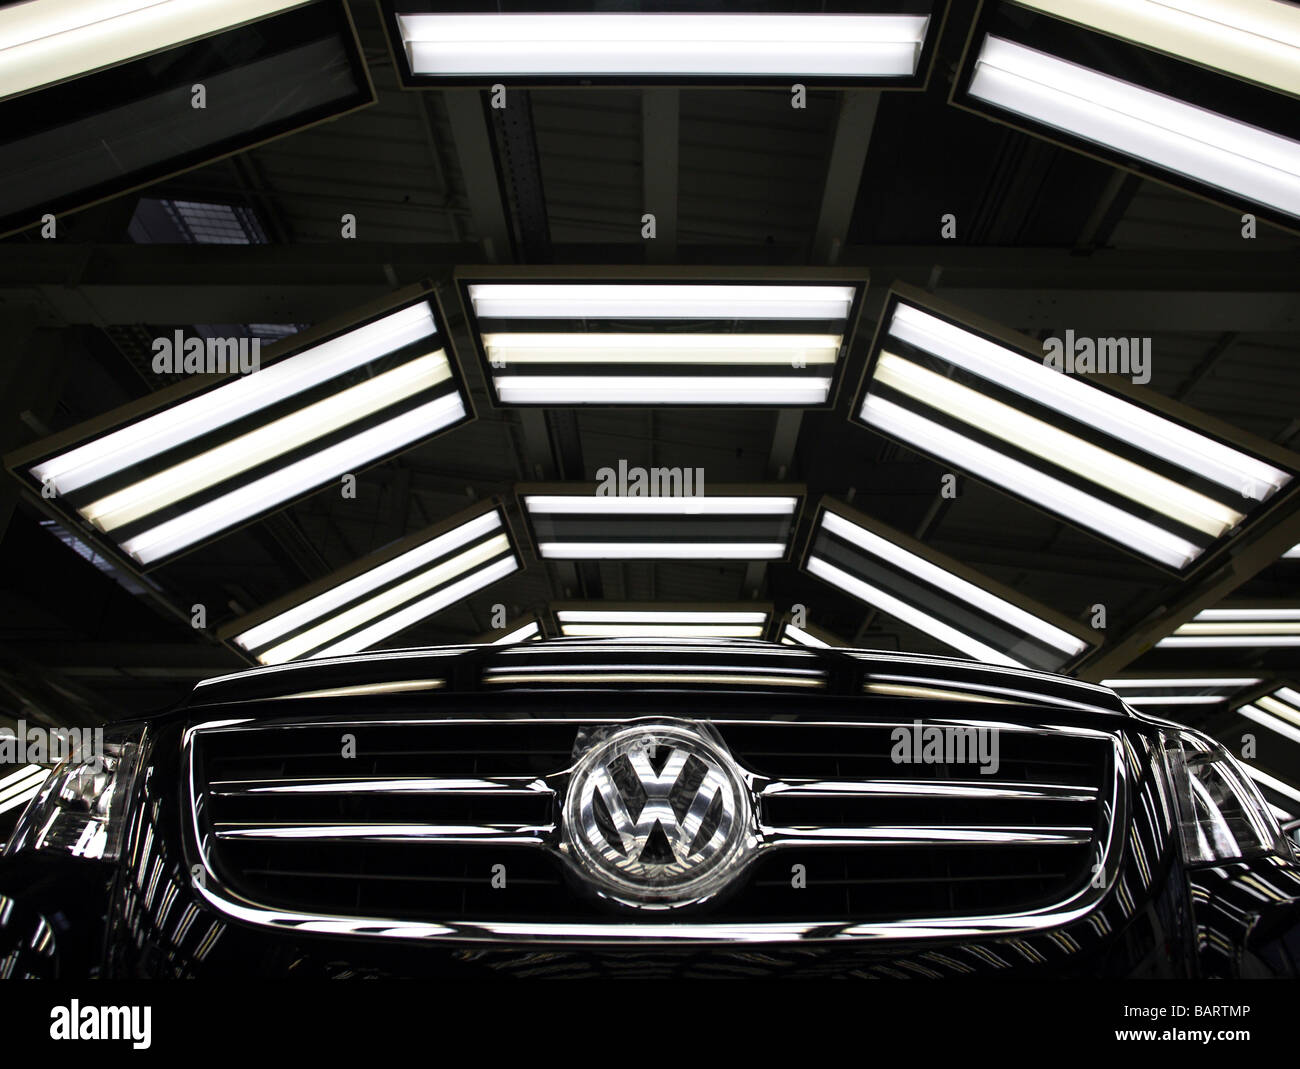 Finishing of Tiguan and Golf at Auto 5000 Gmbh Volkswagen Group Wolfsburg Germany - Stock Image